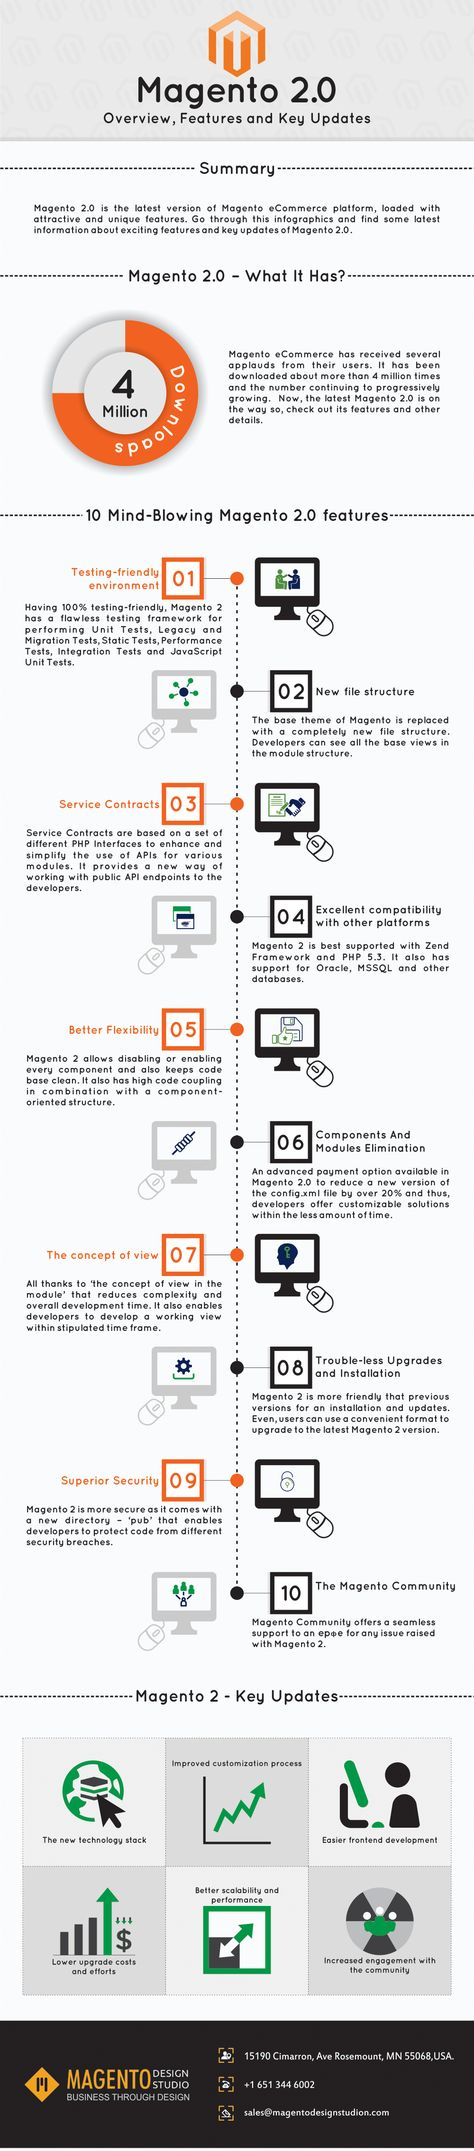 Magento 2.0 – Overview, Features and Key Updates #infographic #Magento #Website